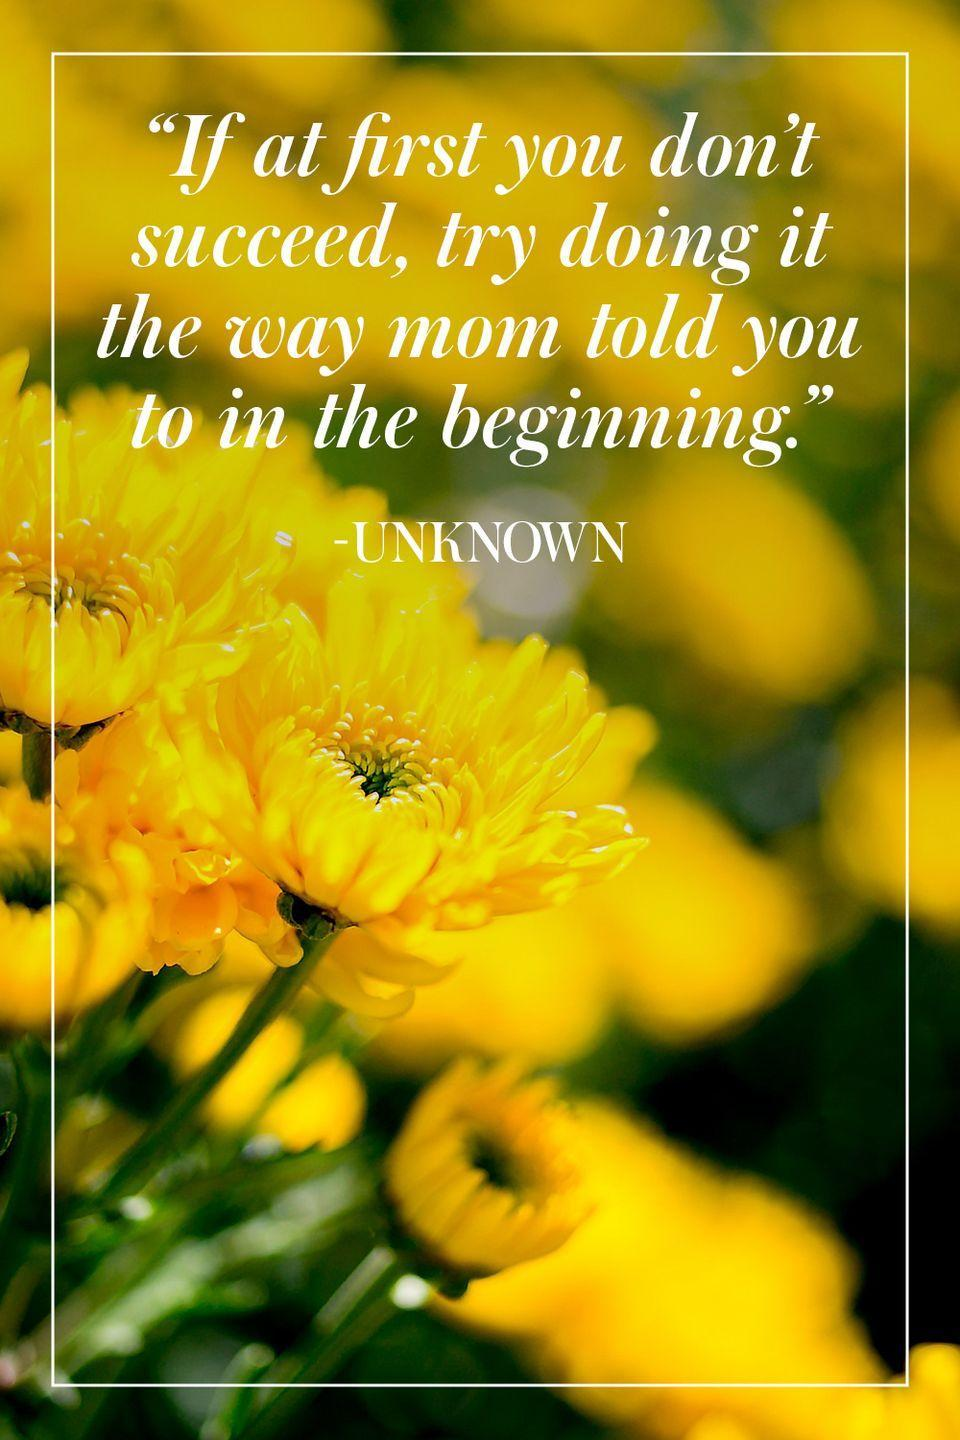 """<p>""""If at first you don't succeed, try doing it the way mom told you to in the beginning."""" </p><p>- Unknown</p>"""